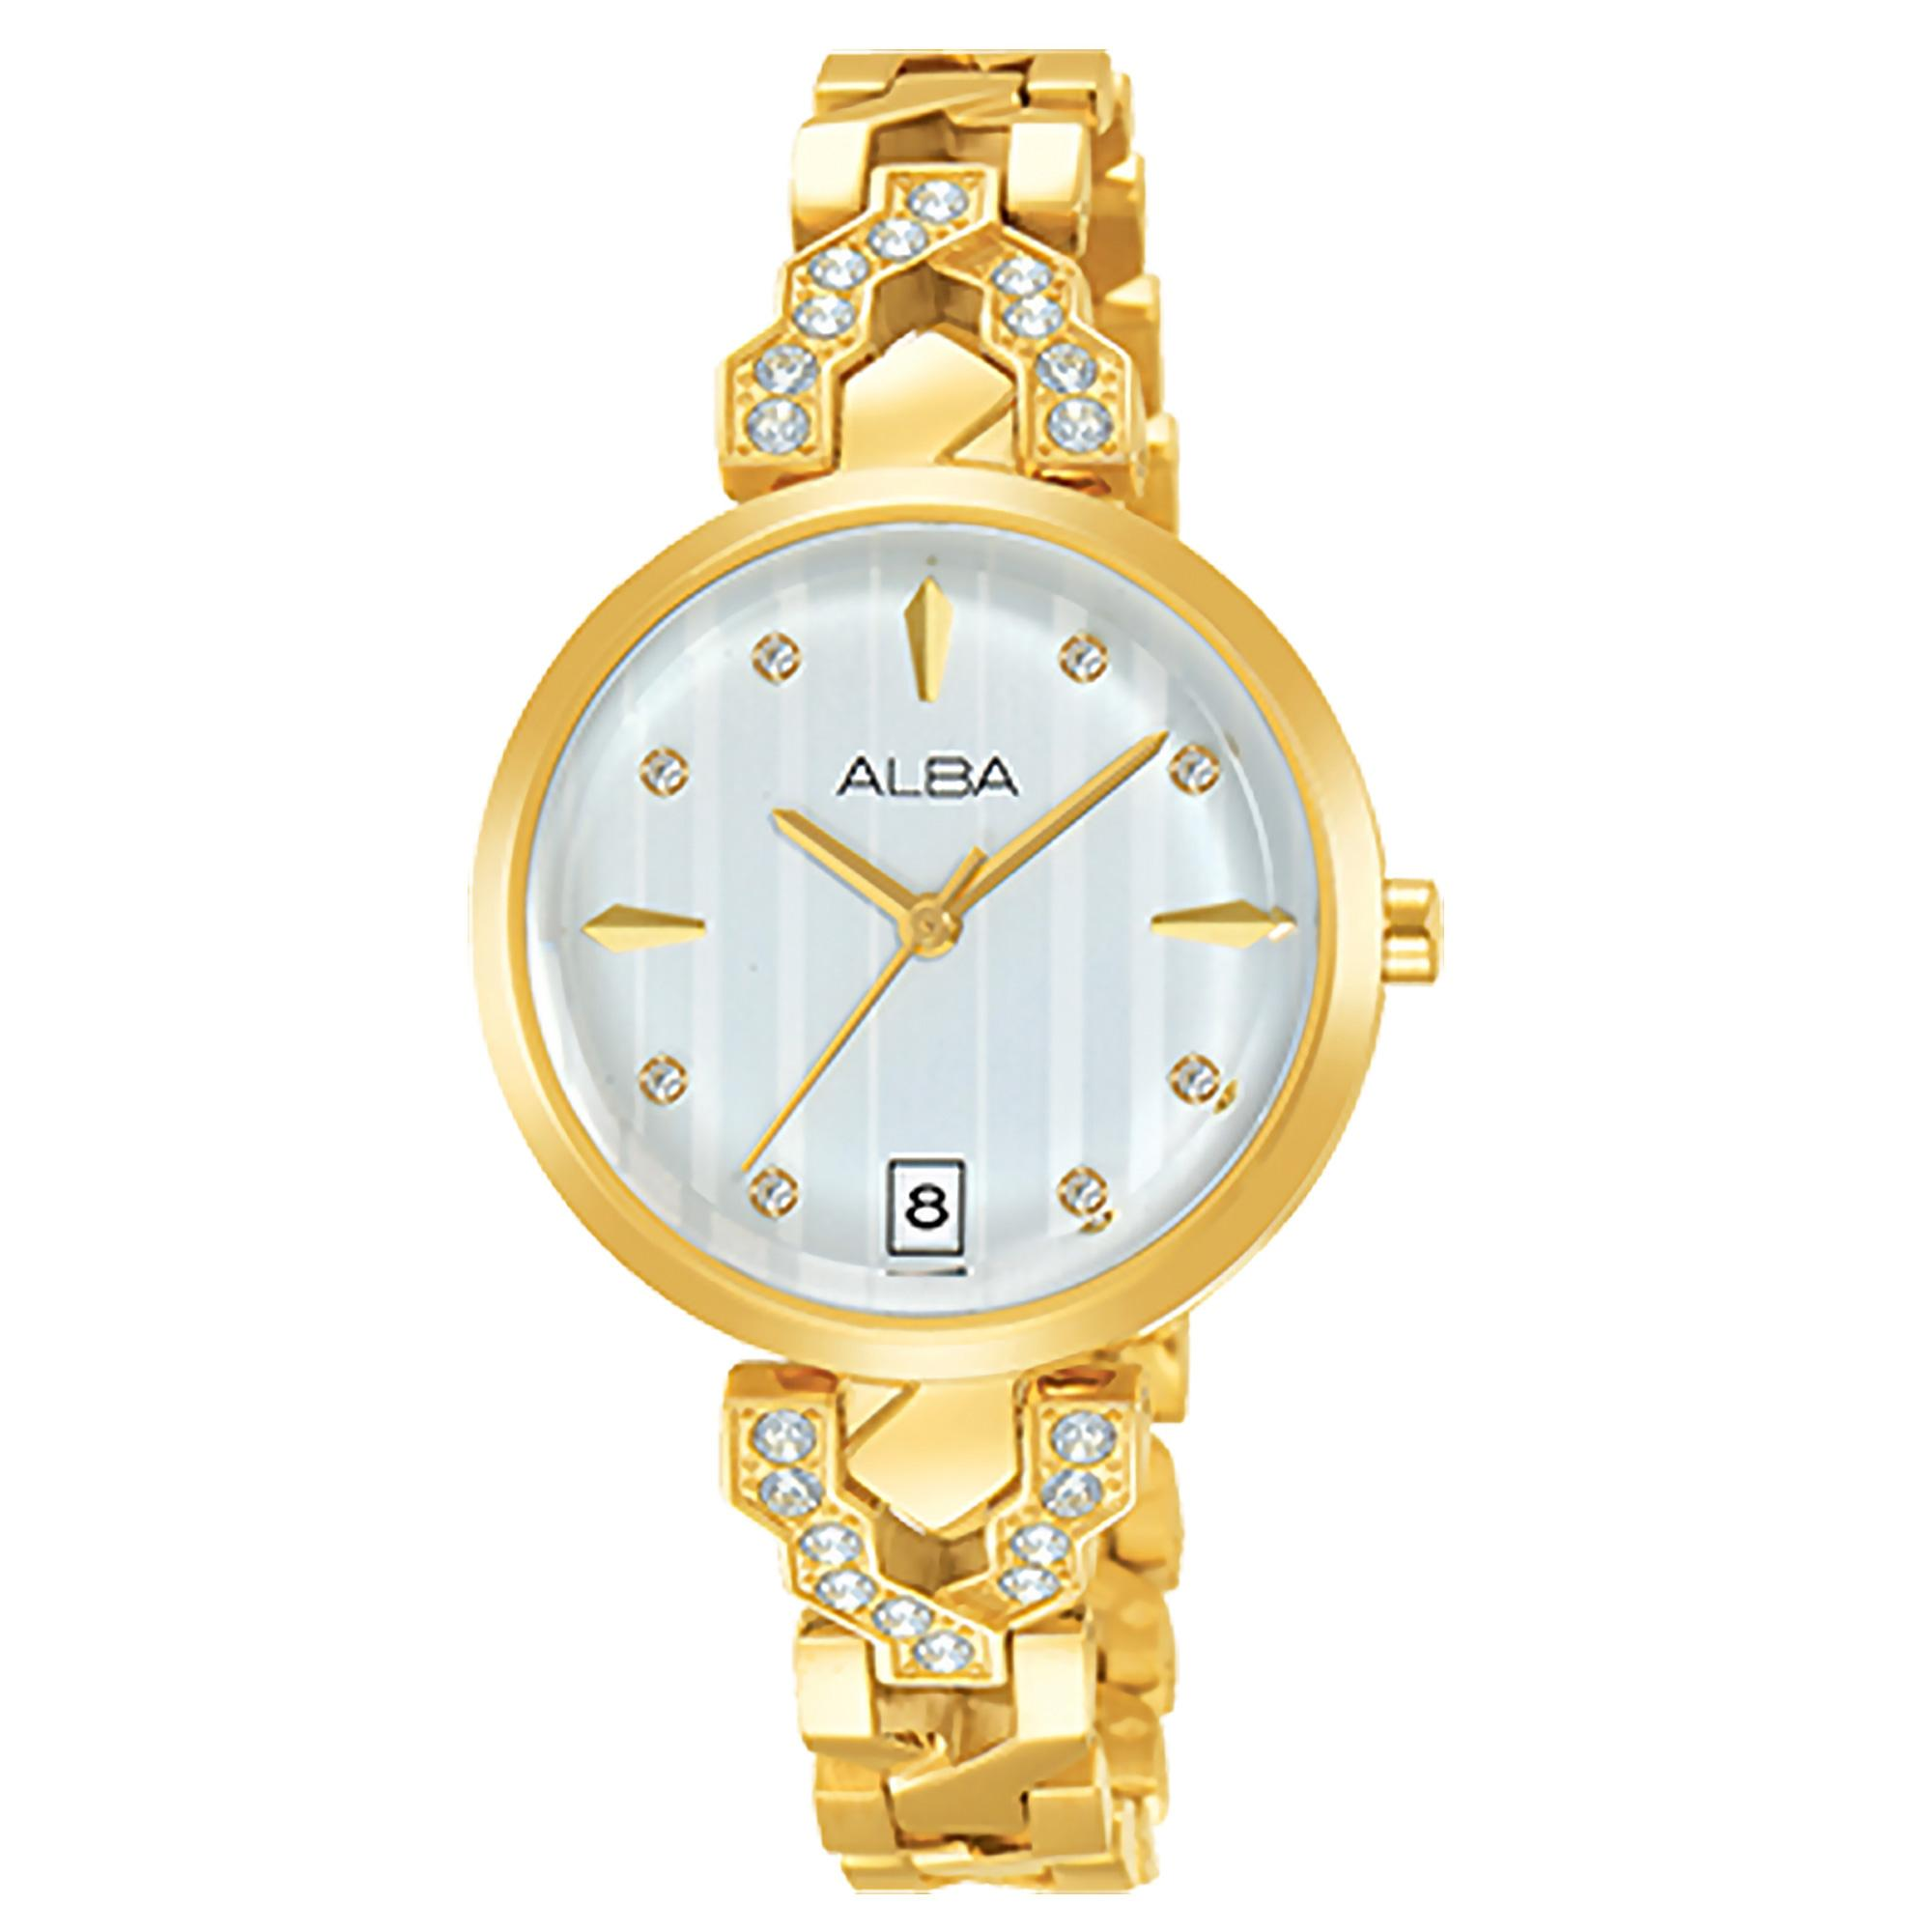 Buy Sell Cheapest Seiko Alba Quartz Best Quality Product Deals Watch Womens Ah7n72